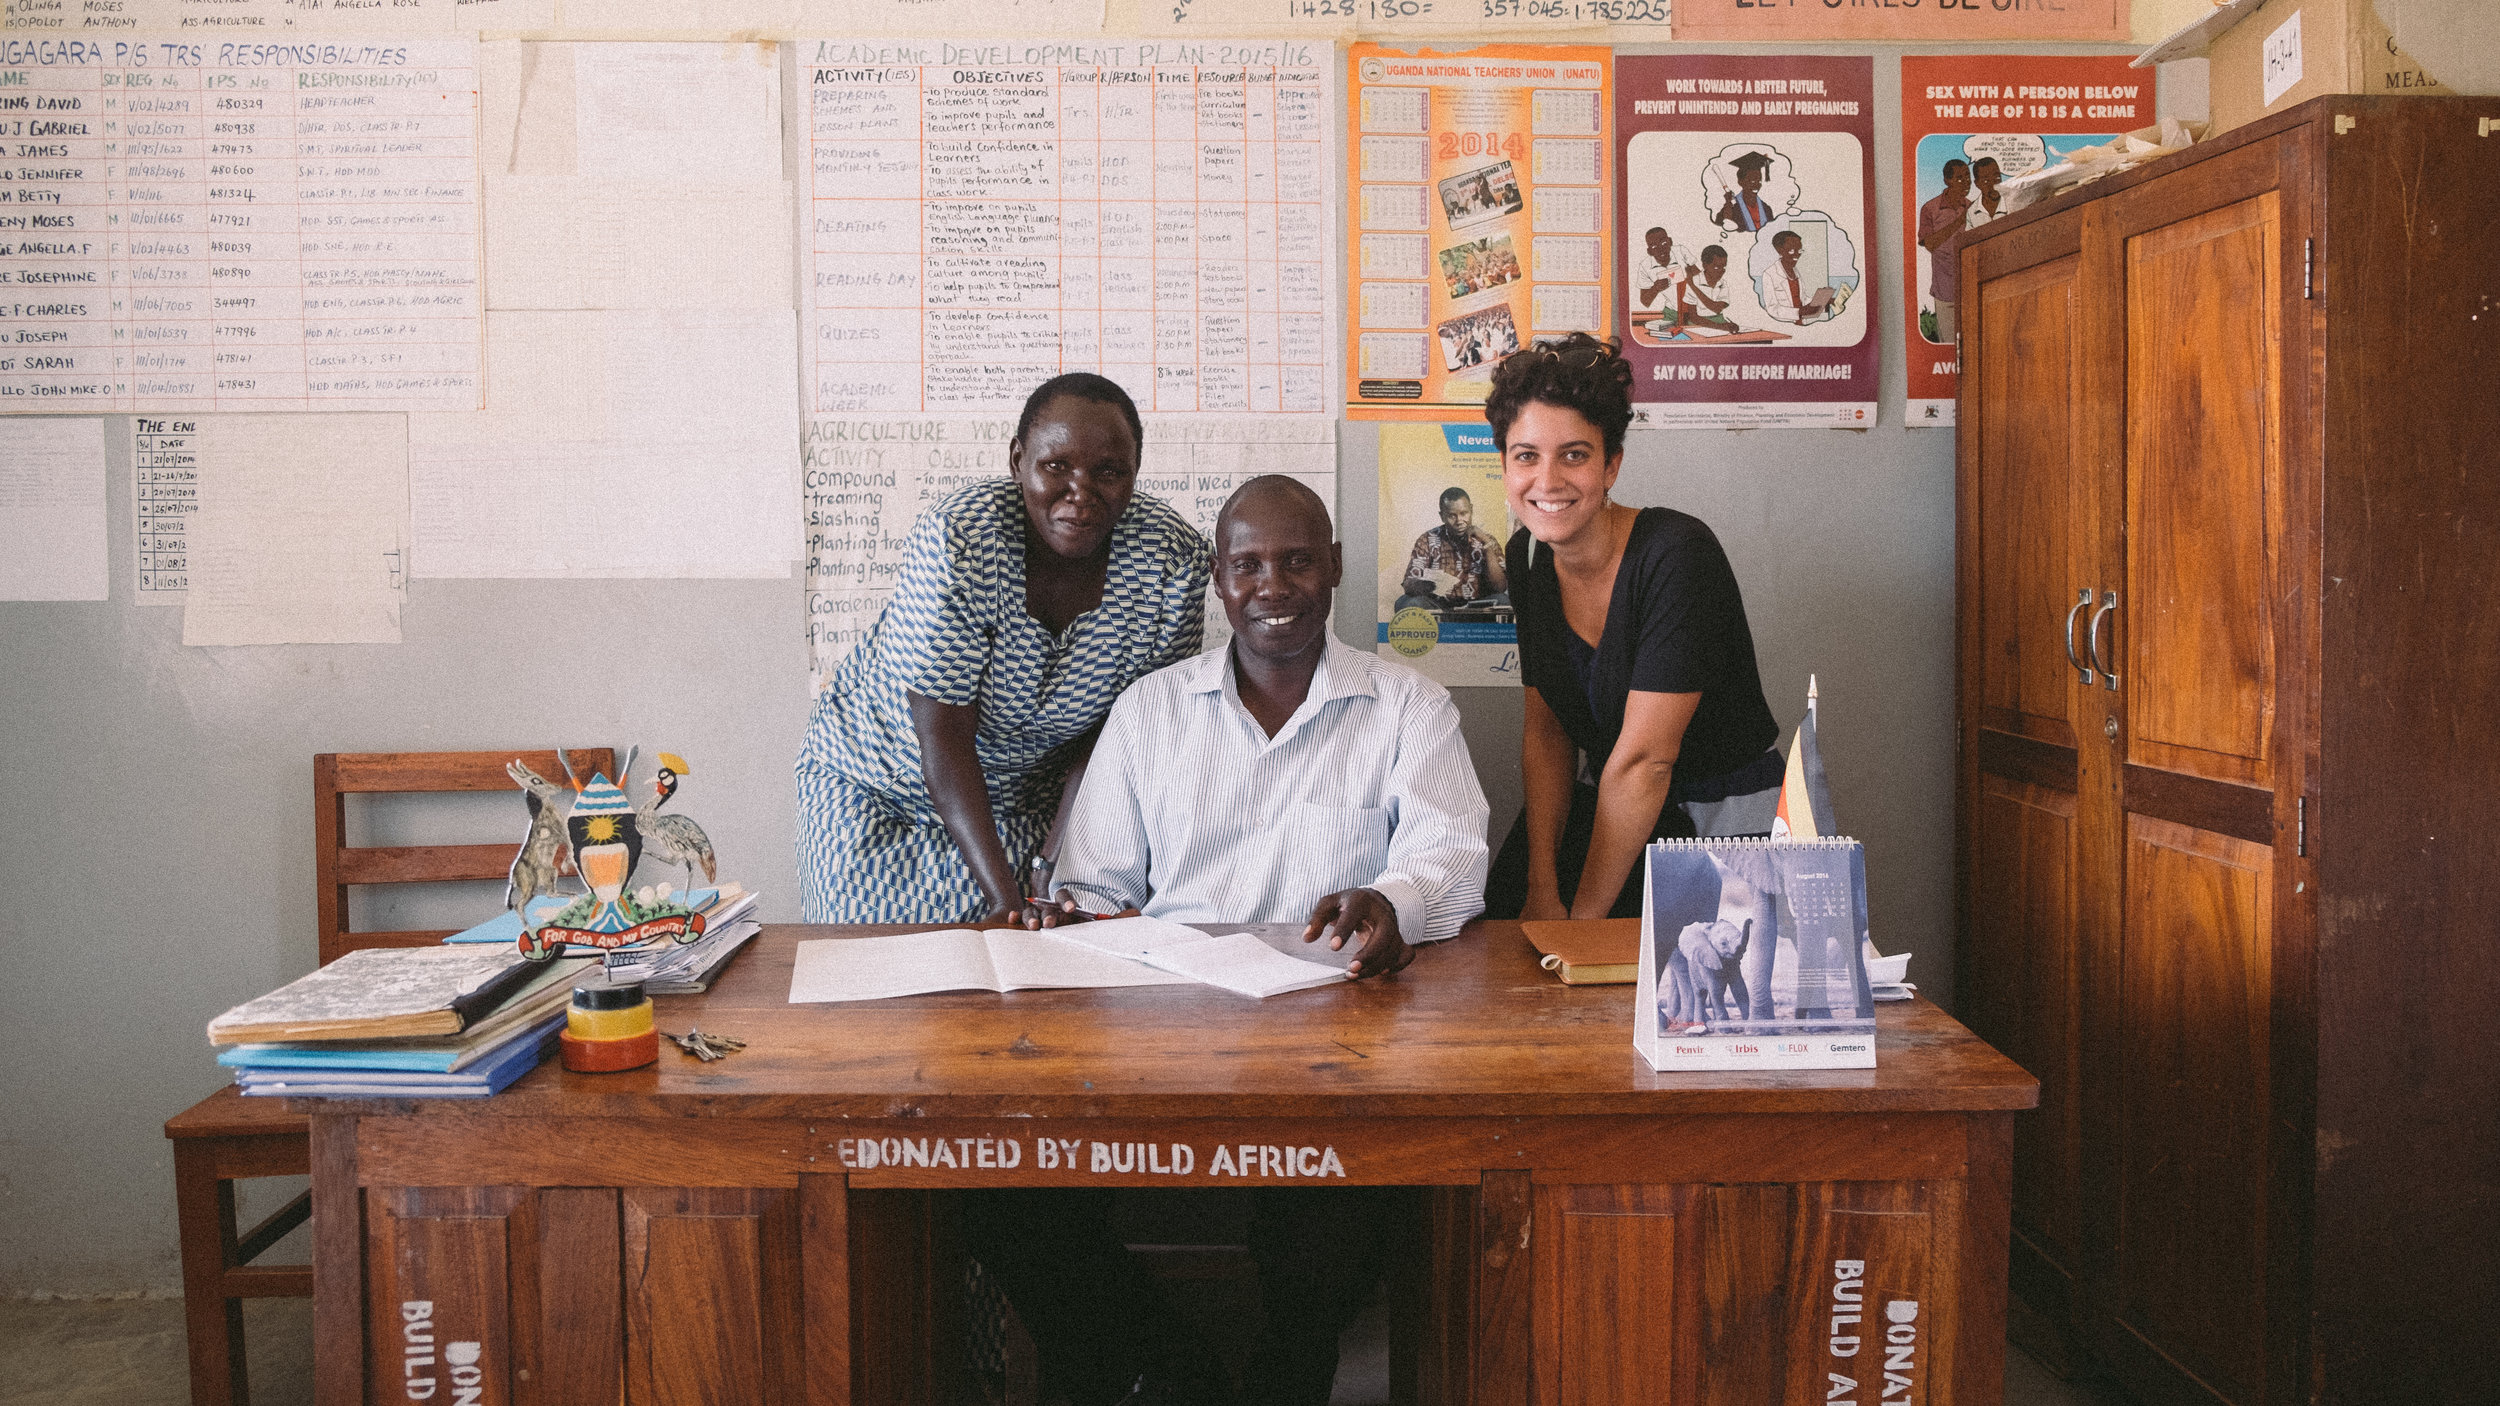 Each time we've filmed for Build Africa there has been a formal meeting with the headmaster and their staff before shooting begins. Here's Arianna with the Headteacher and one of the teachers, Jennifer.